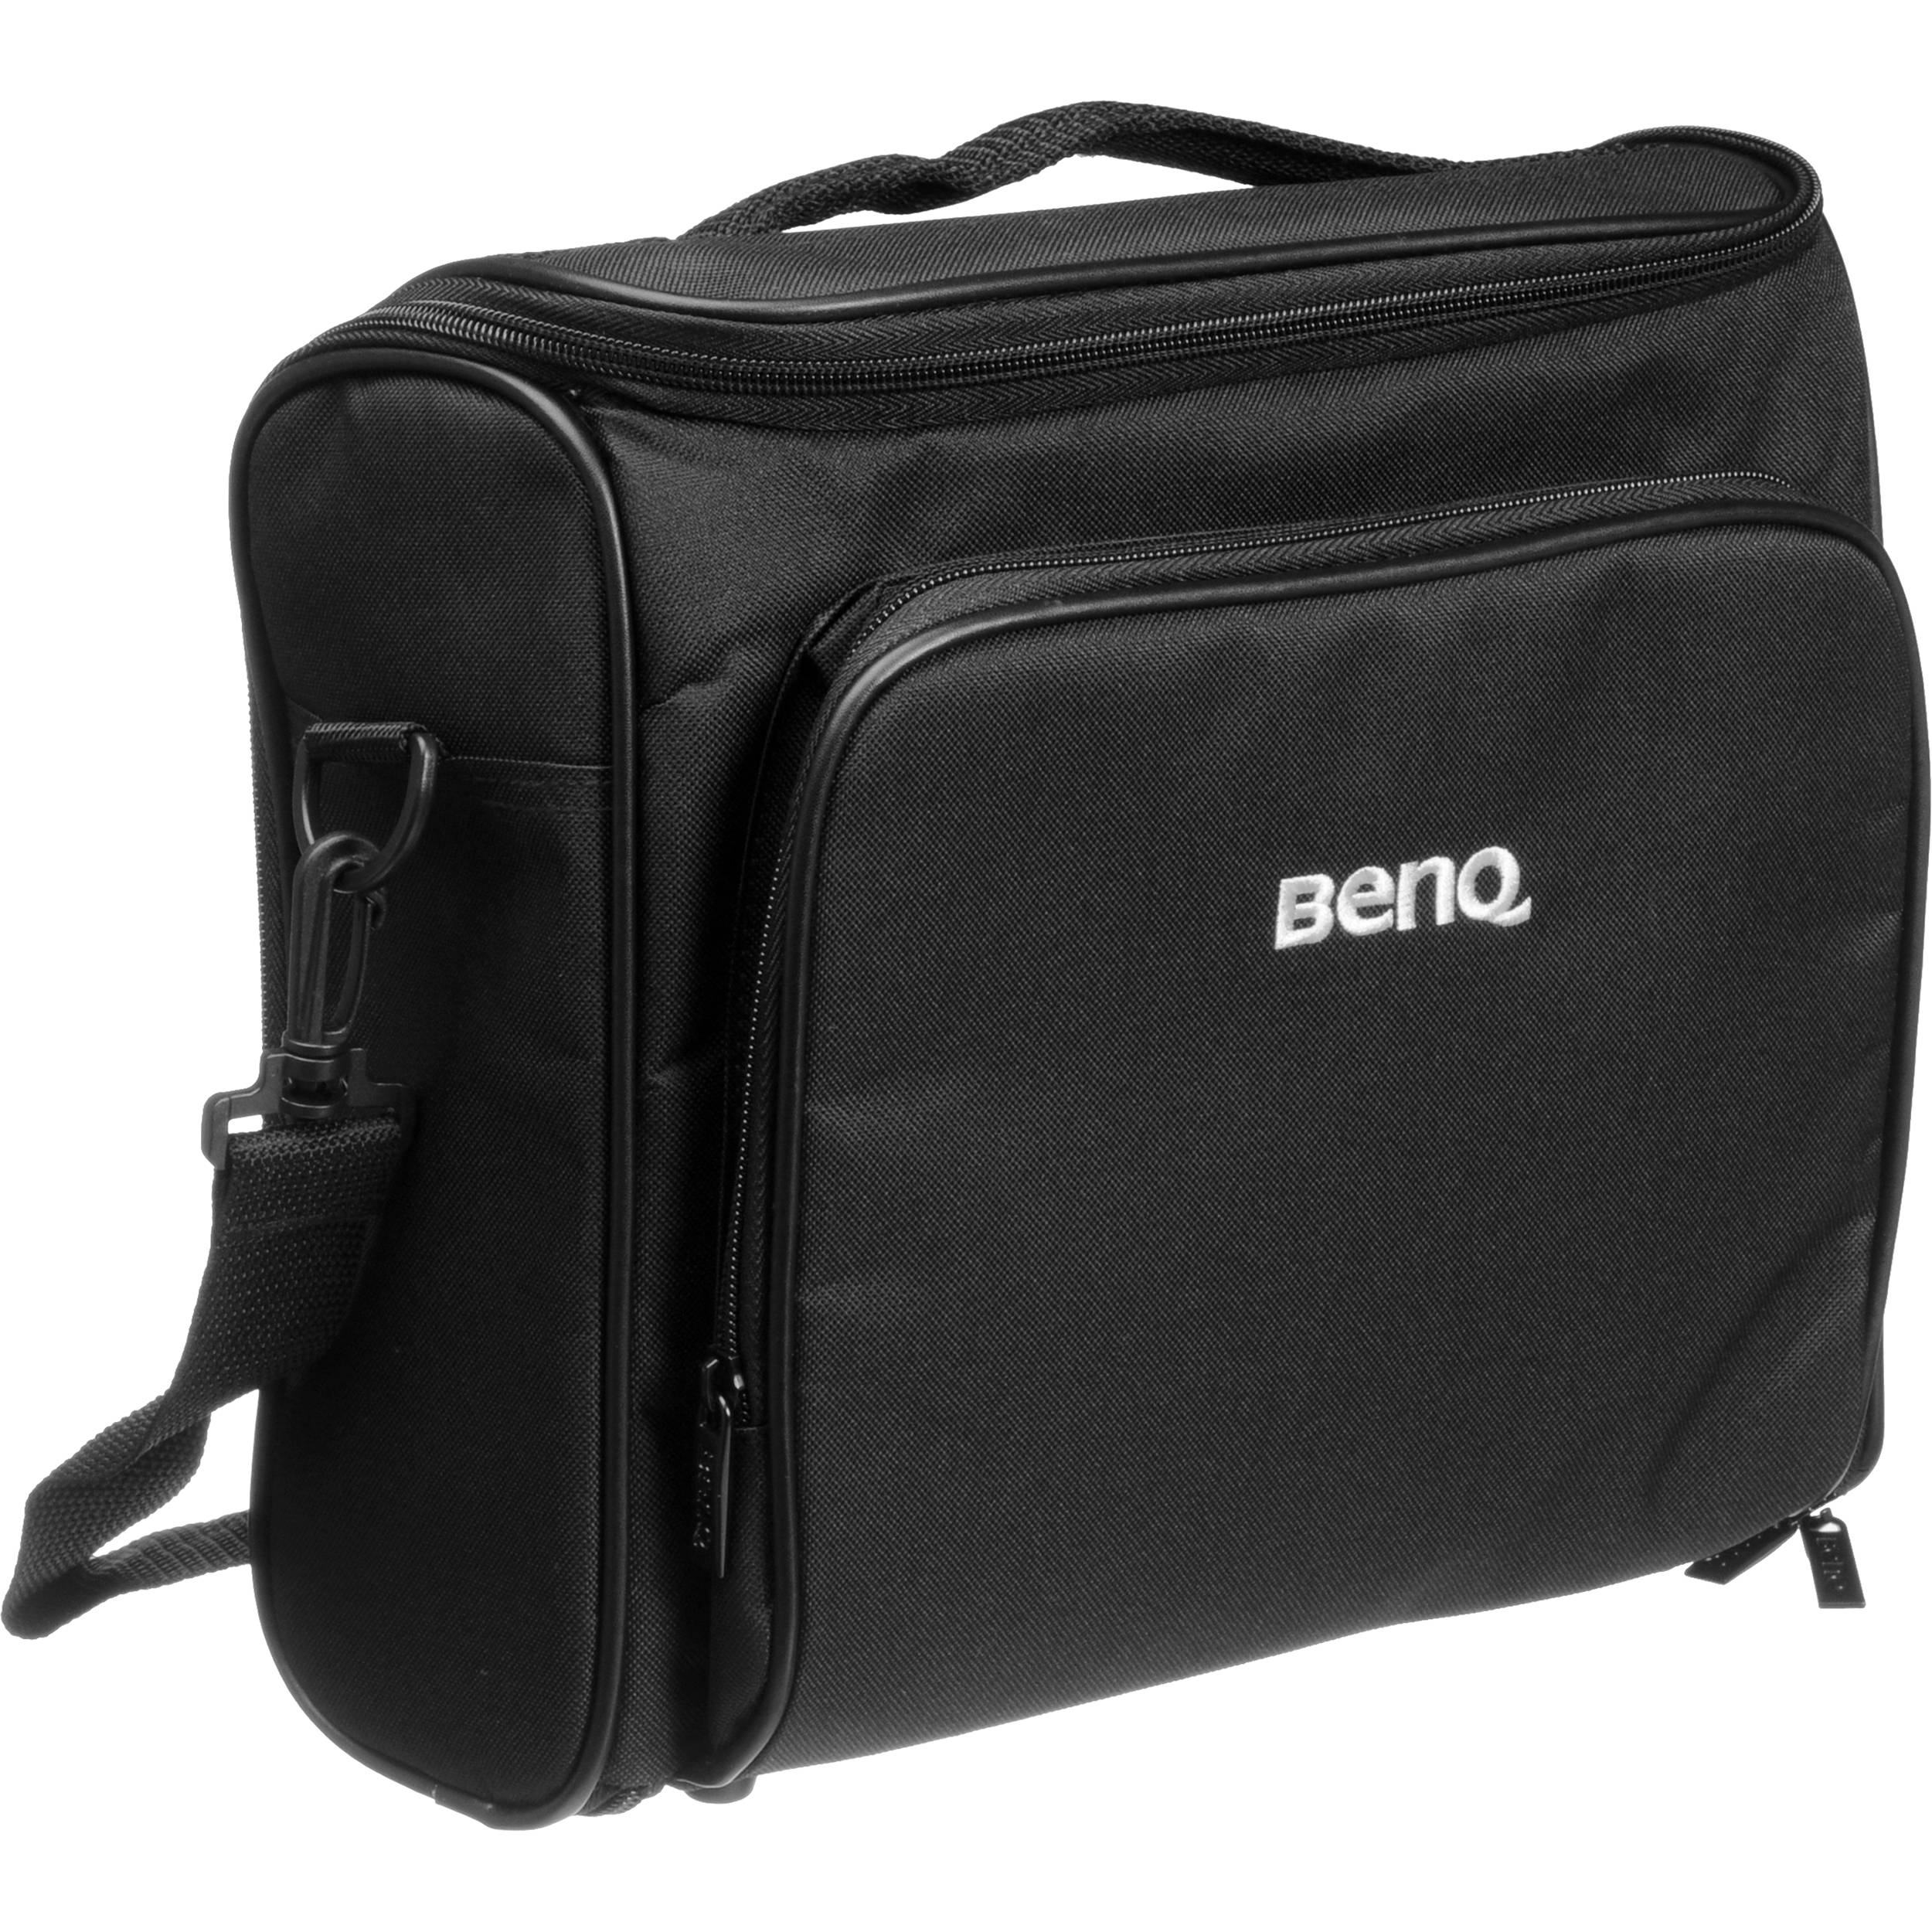 Benq soft carrying case for ms600 mx600 700 5j b h for Pocket projector case